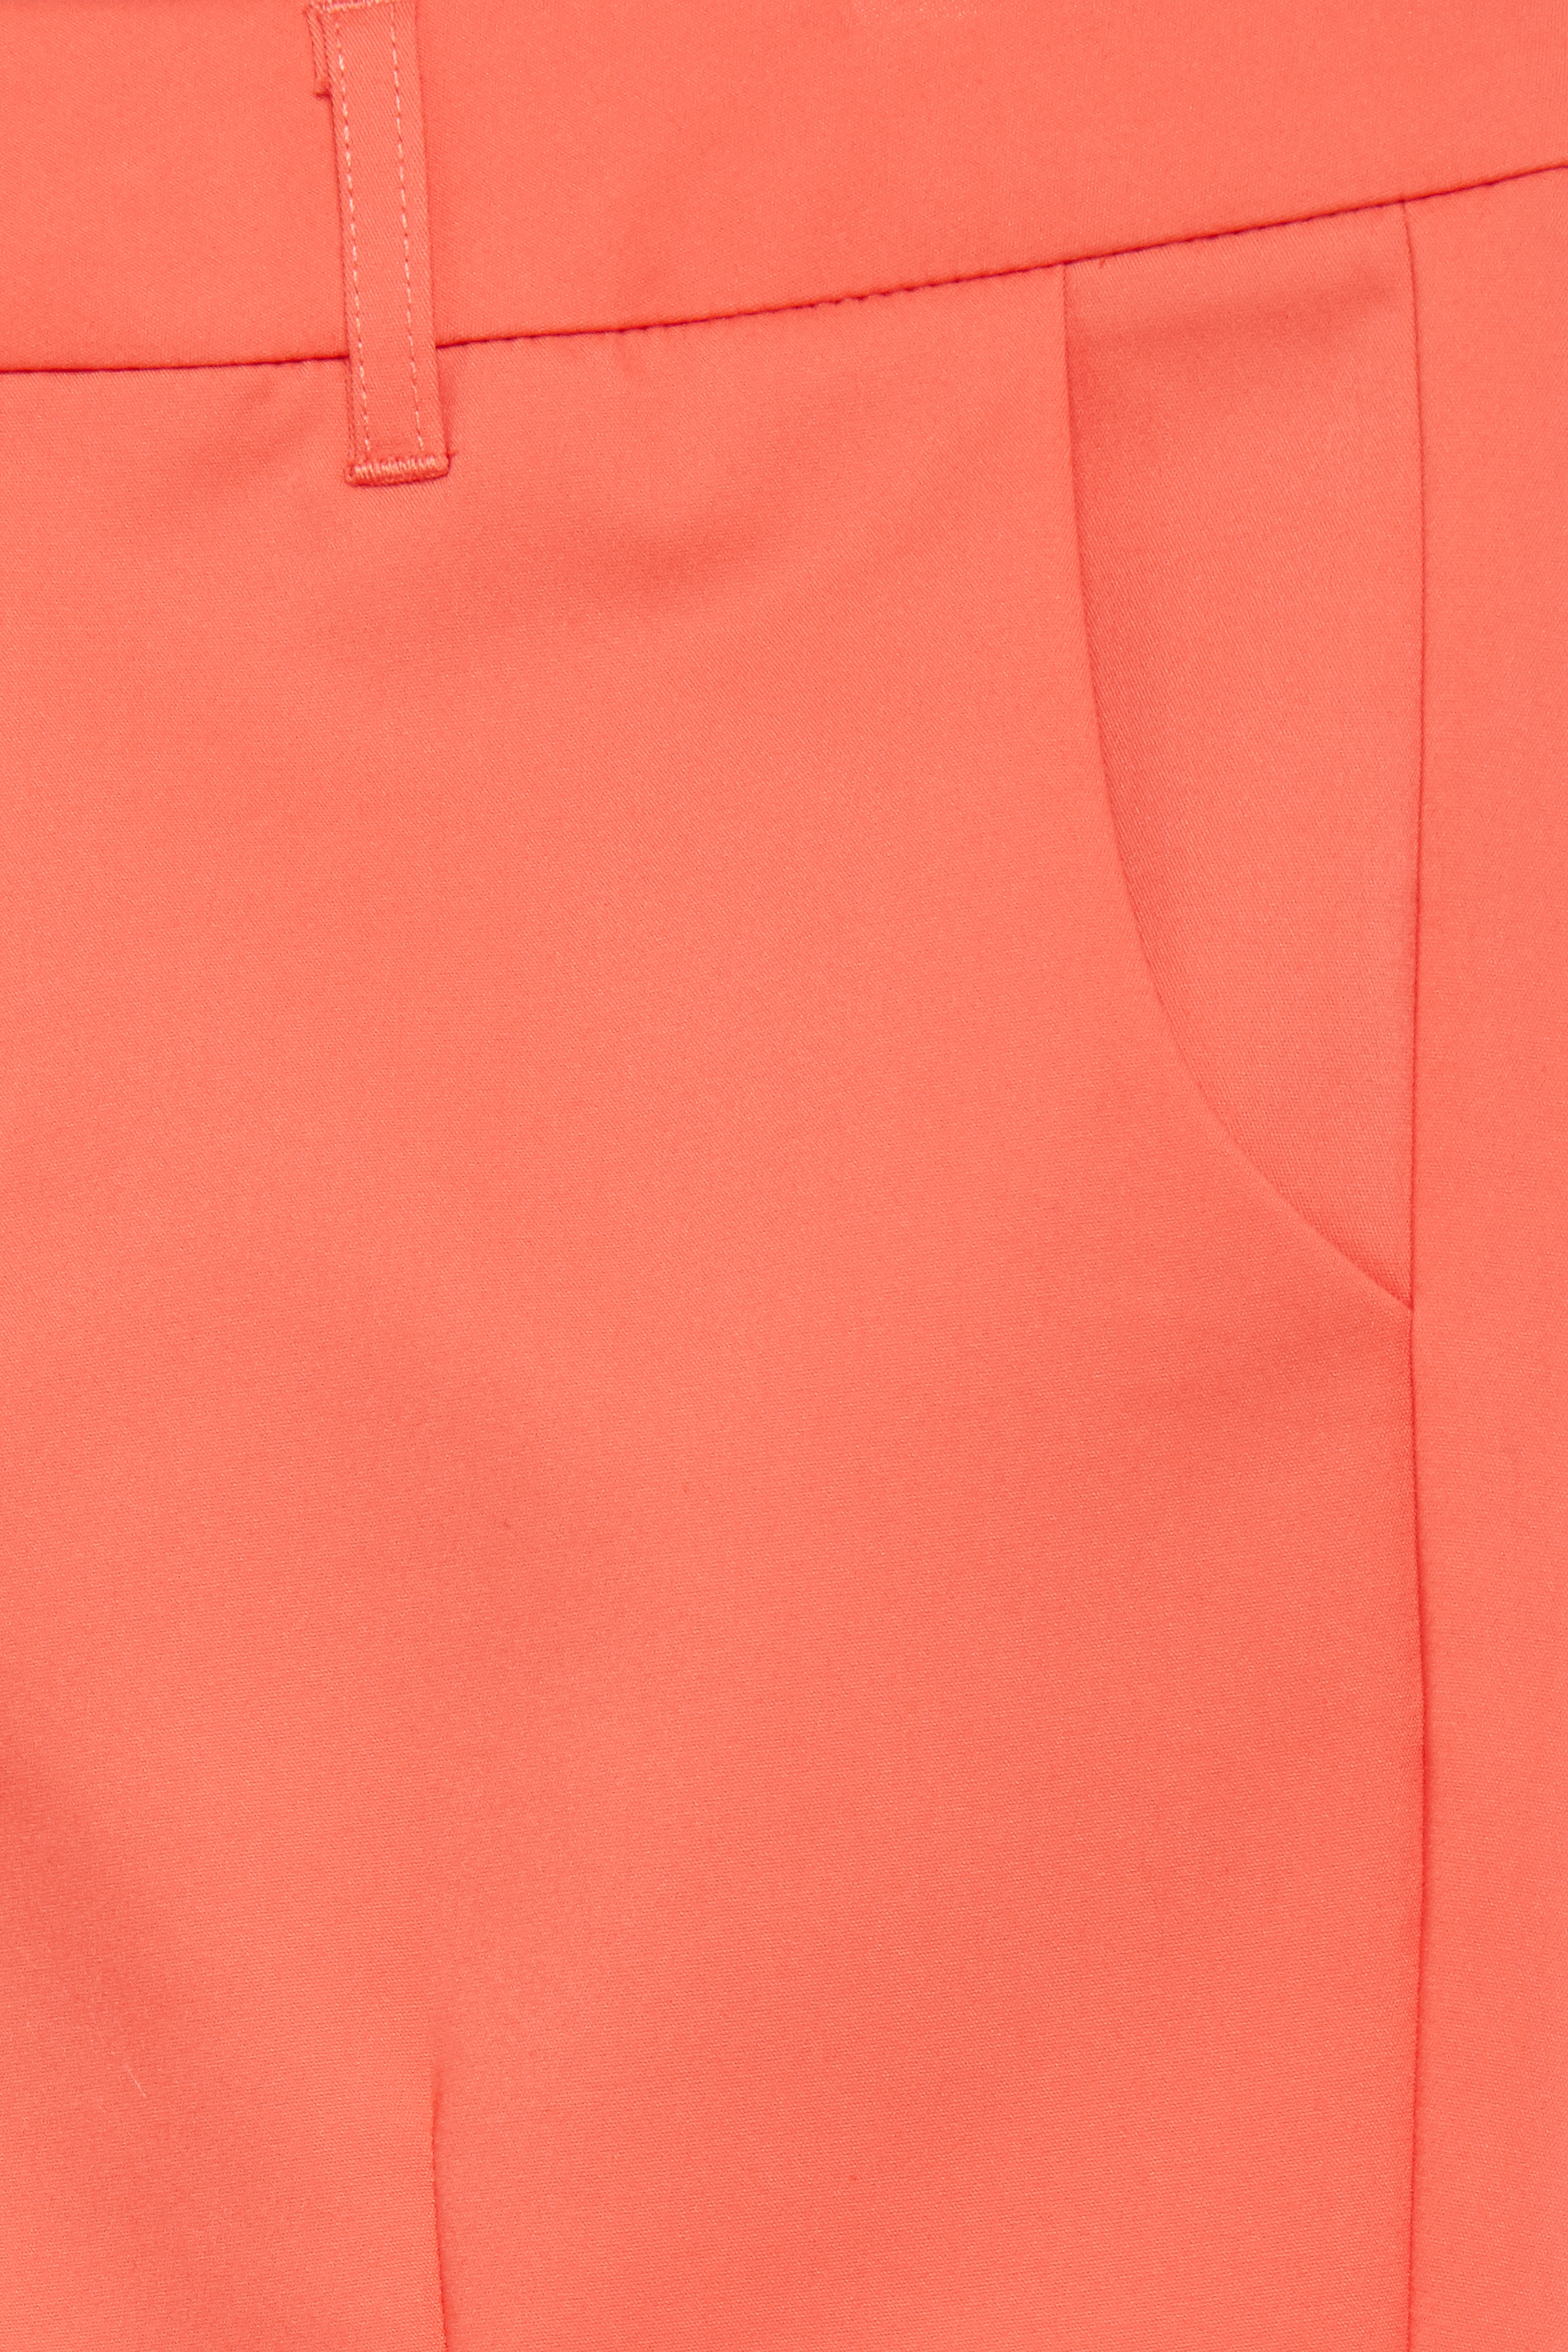 Deep Sea Coral Casual bukser fra Pulz Jeans – Køb Deep Sea Coral Casual bukser fra str. 32-46 her